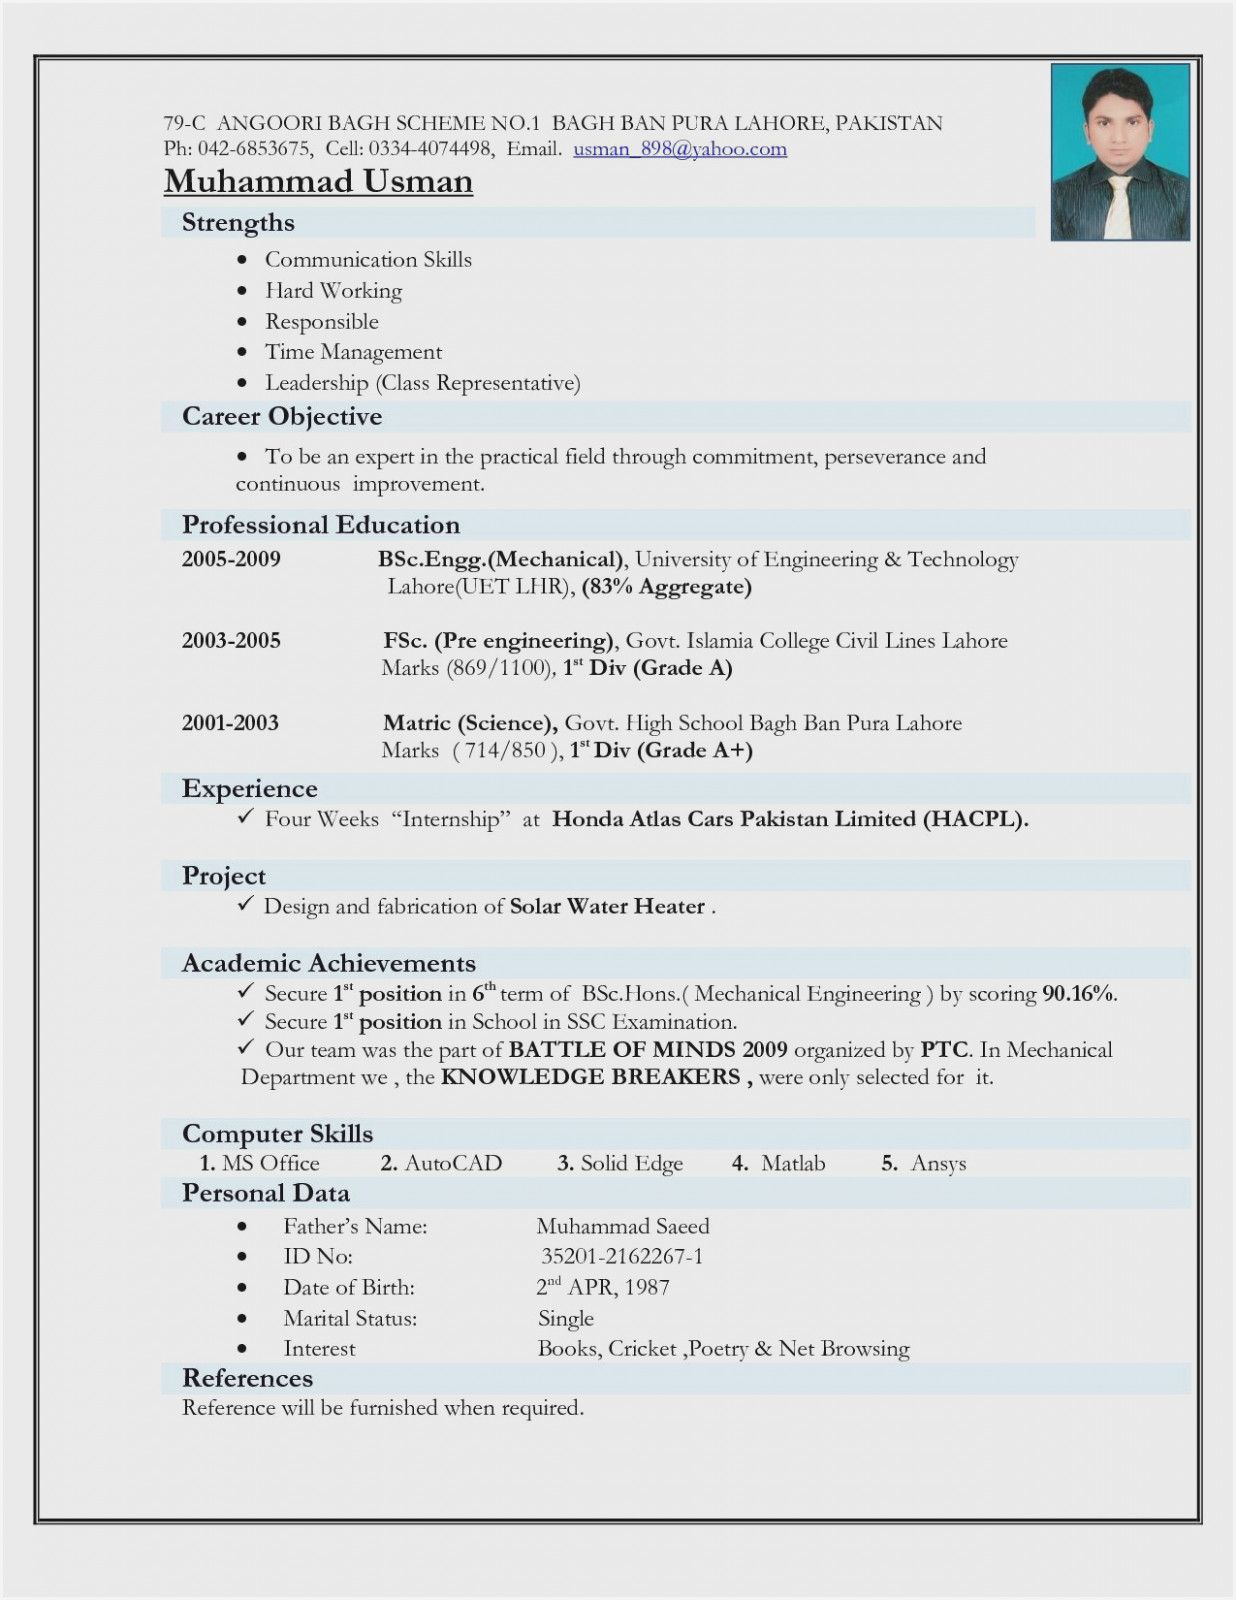 engineer resume template in mechanical engineering format for freshers sample hardware Resume Sample Resume For Hardware And Networking Engineer